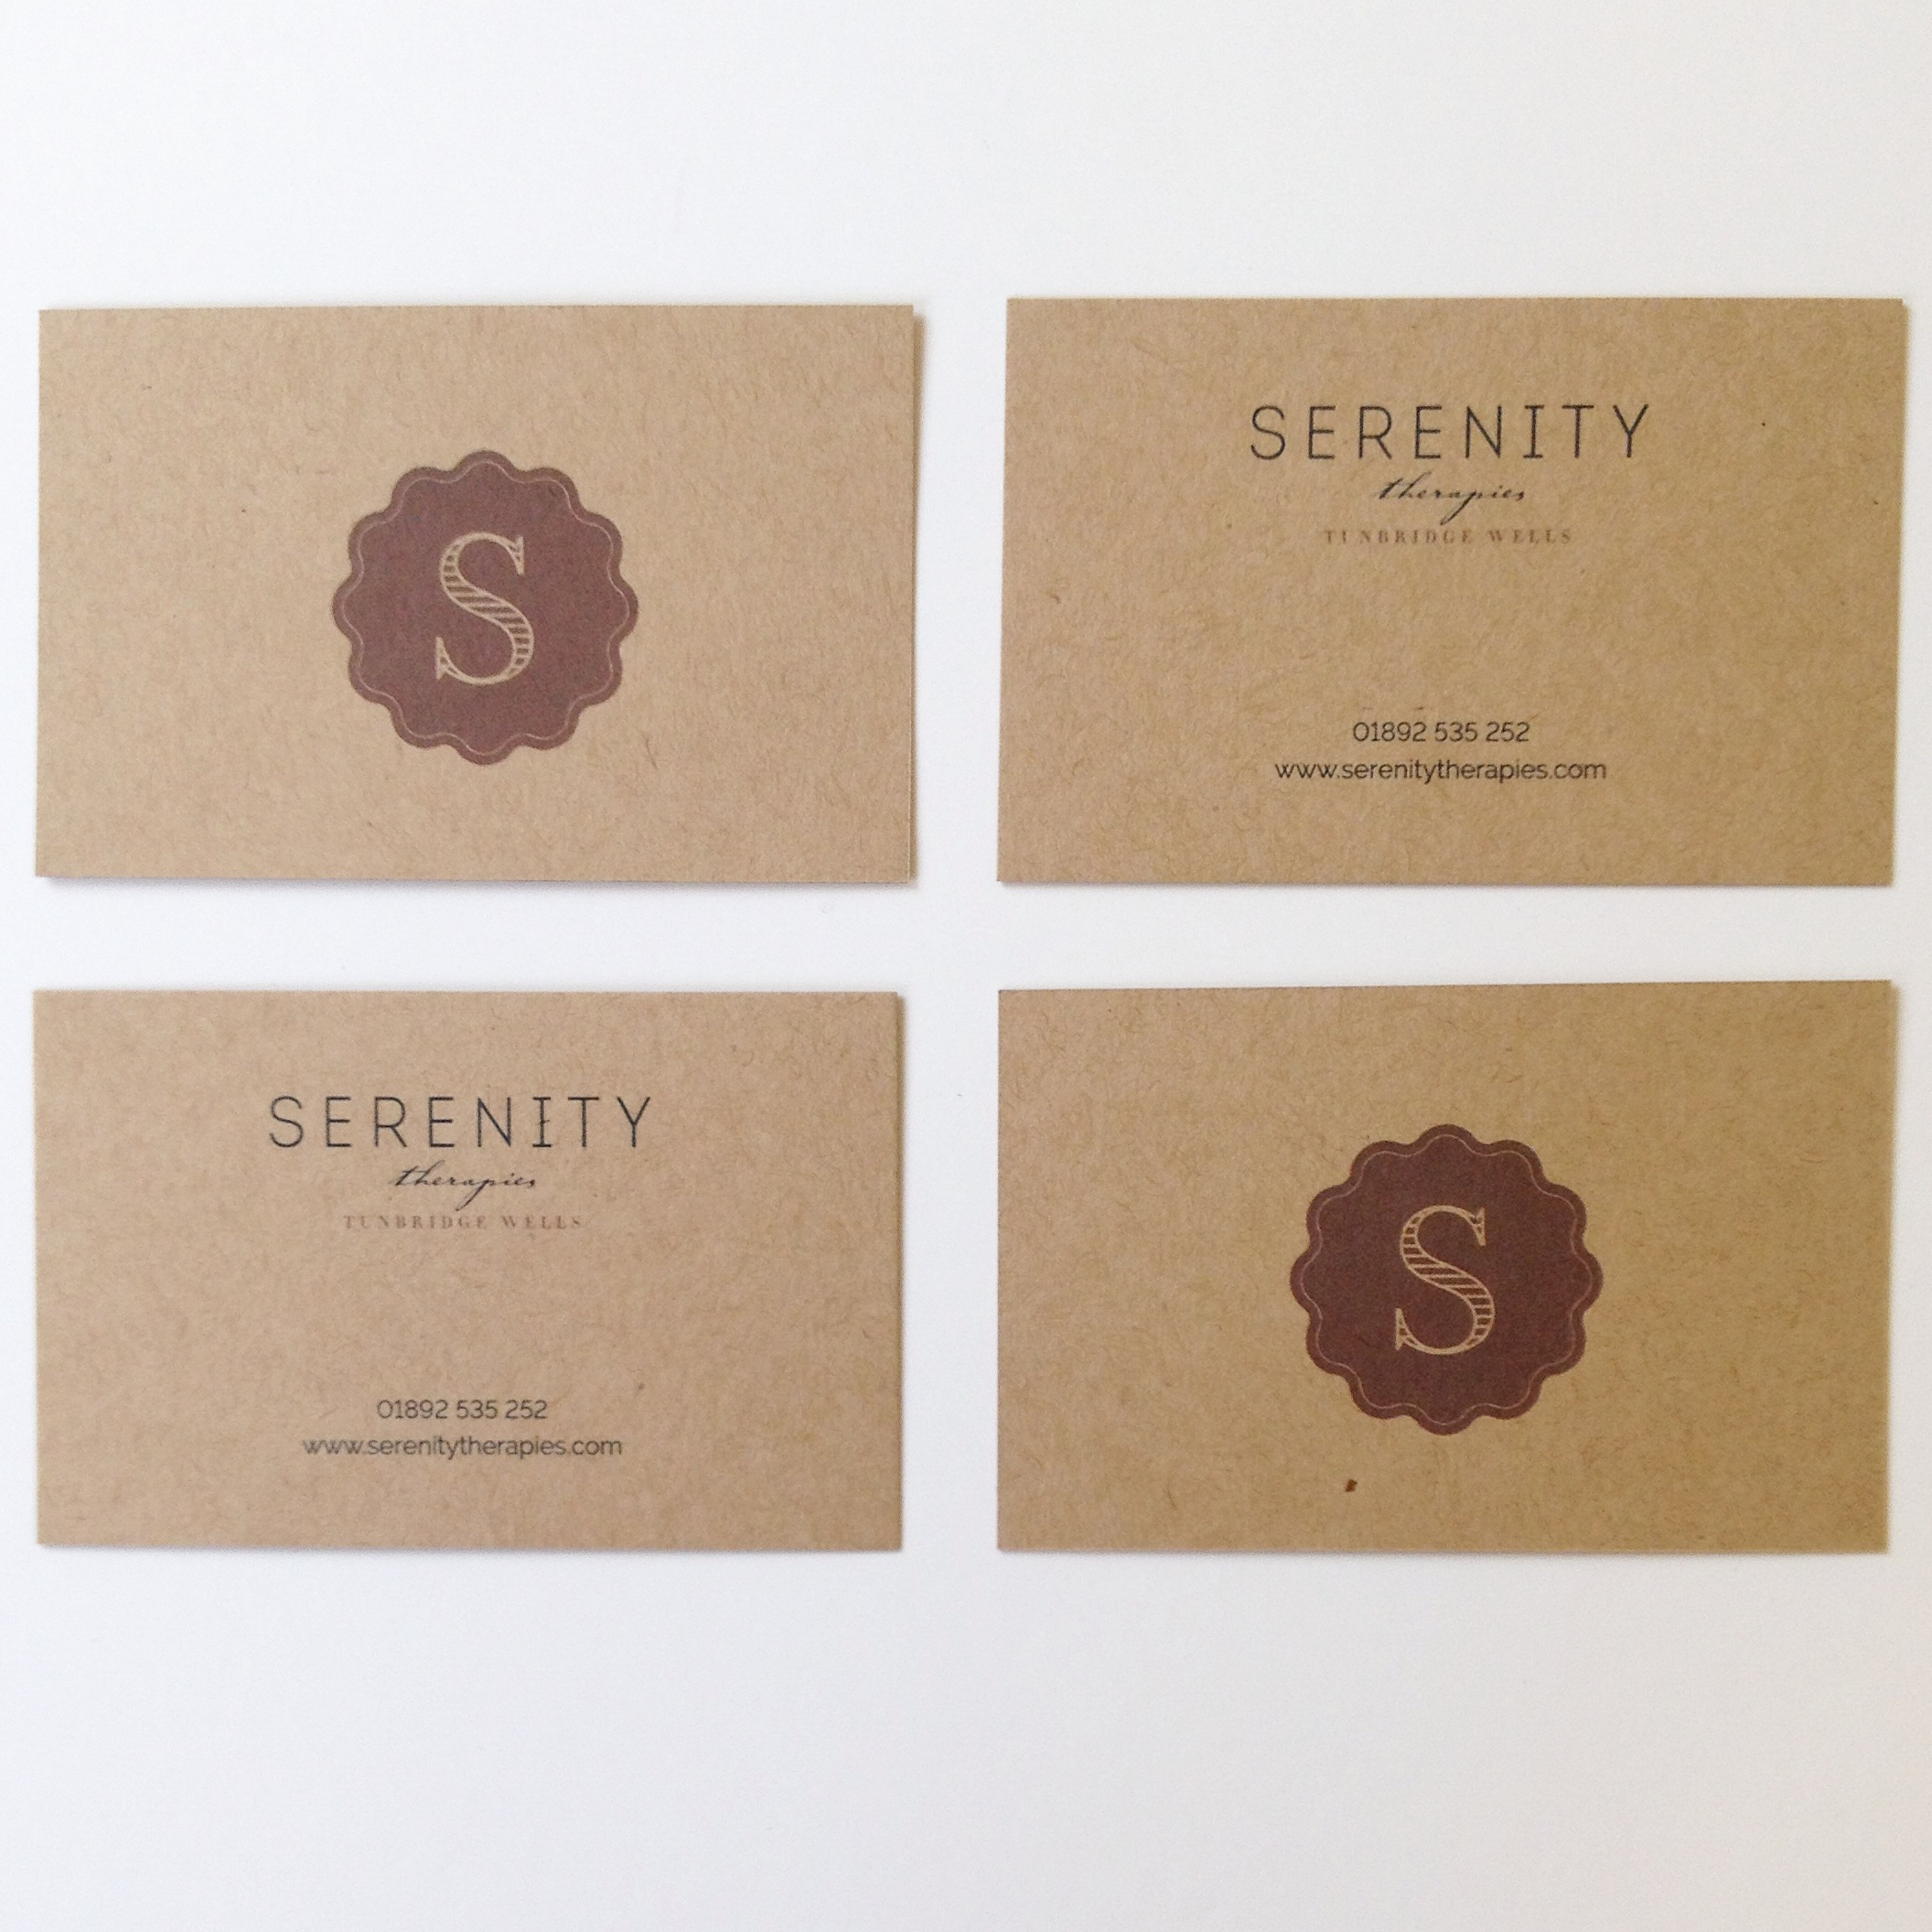 Business cards for Serenity Therapies of Tunbridge Wells by Ditto Creative, Kent